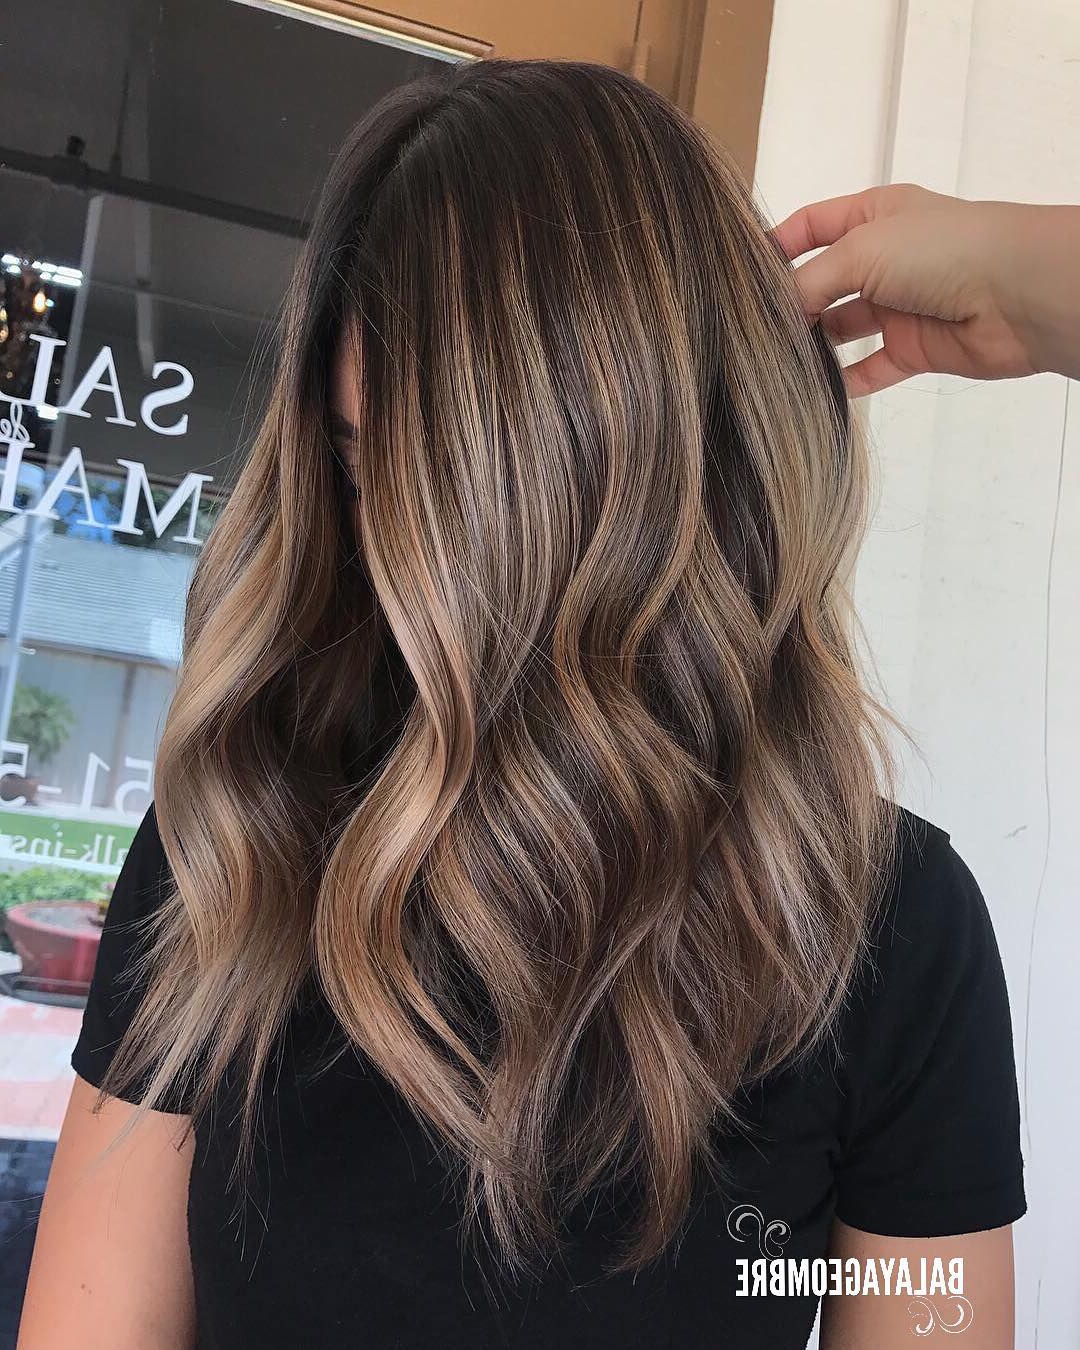 10 Best Medium Layered Hairstyles 2019 – Brown & Ash Blonde Fashion In Latest Medium Hairstyles Brunette Layers (Gallery 4 of 20)